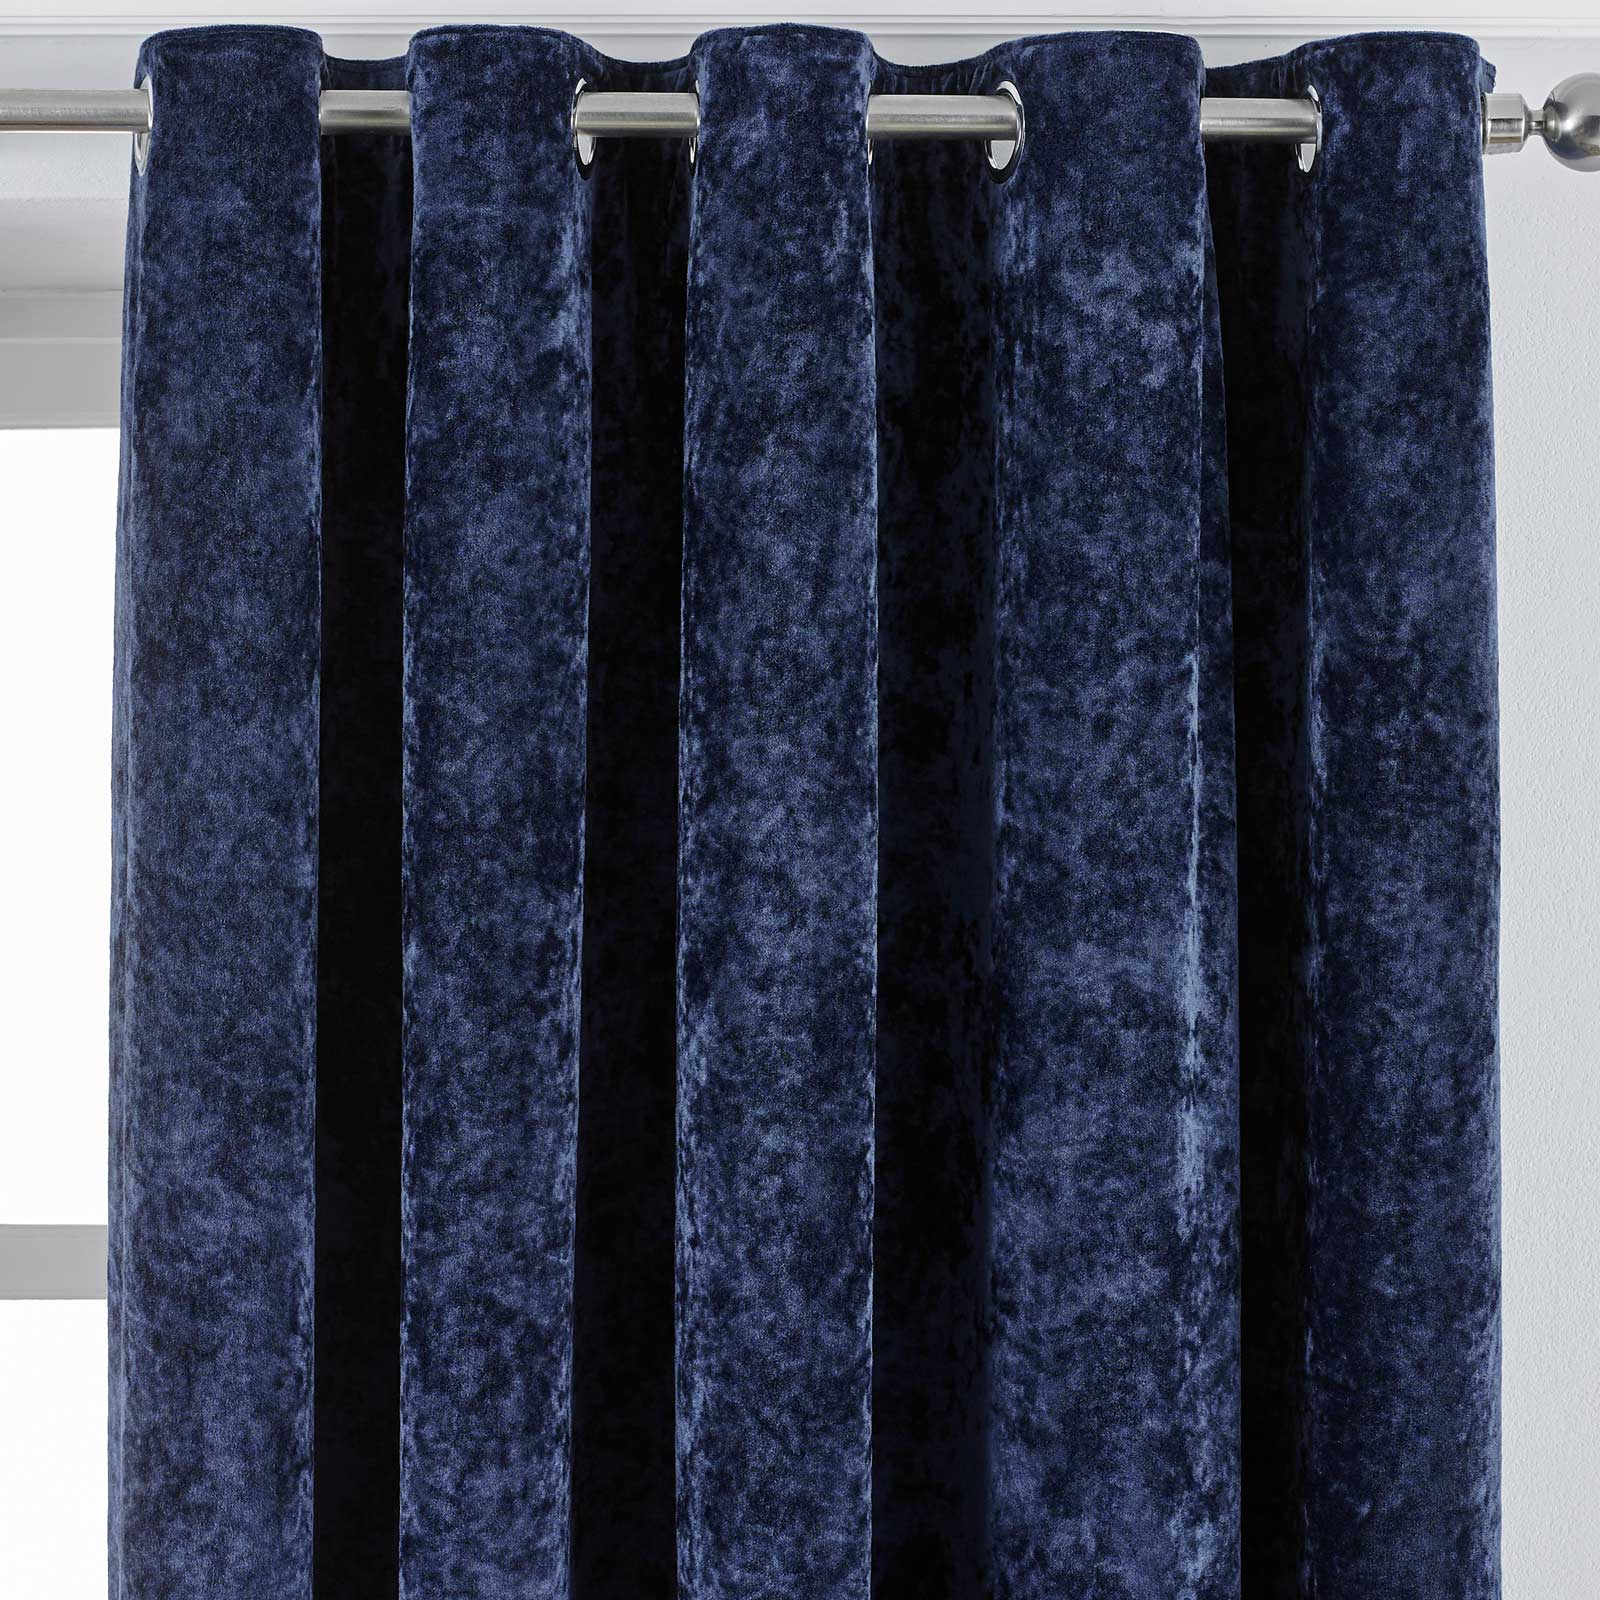 Verona Crushed Velvet Lined Eyelet Curtains Navy -  - Ideal Textiles